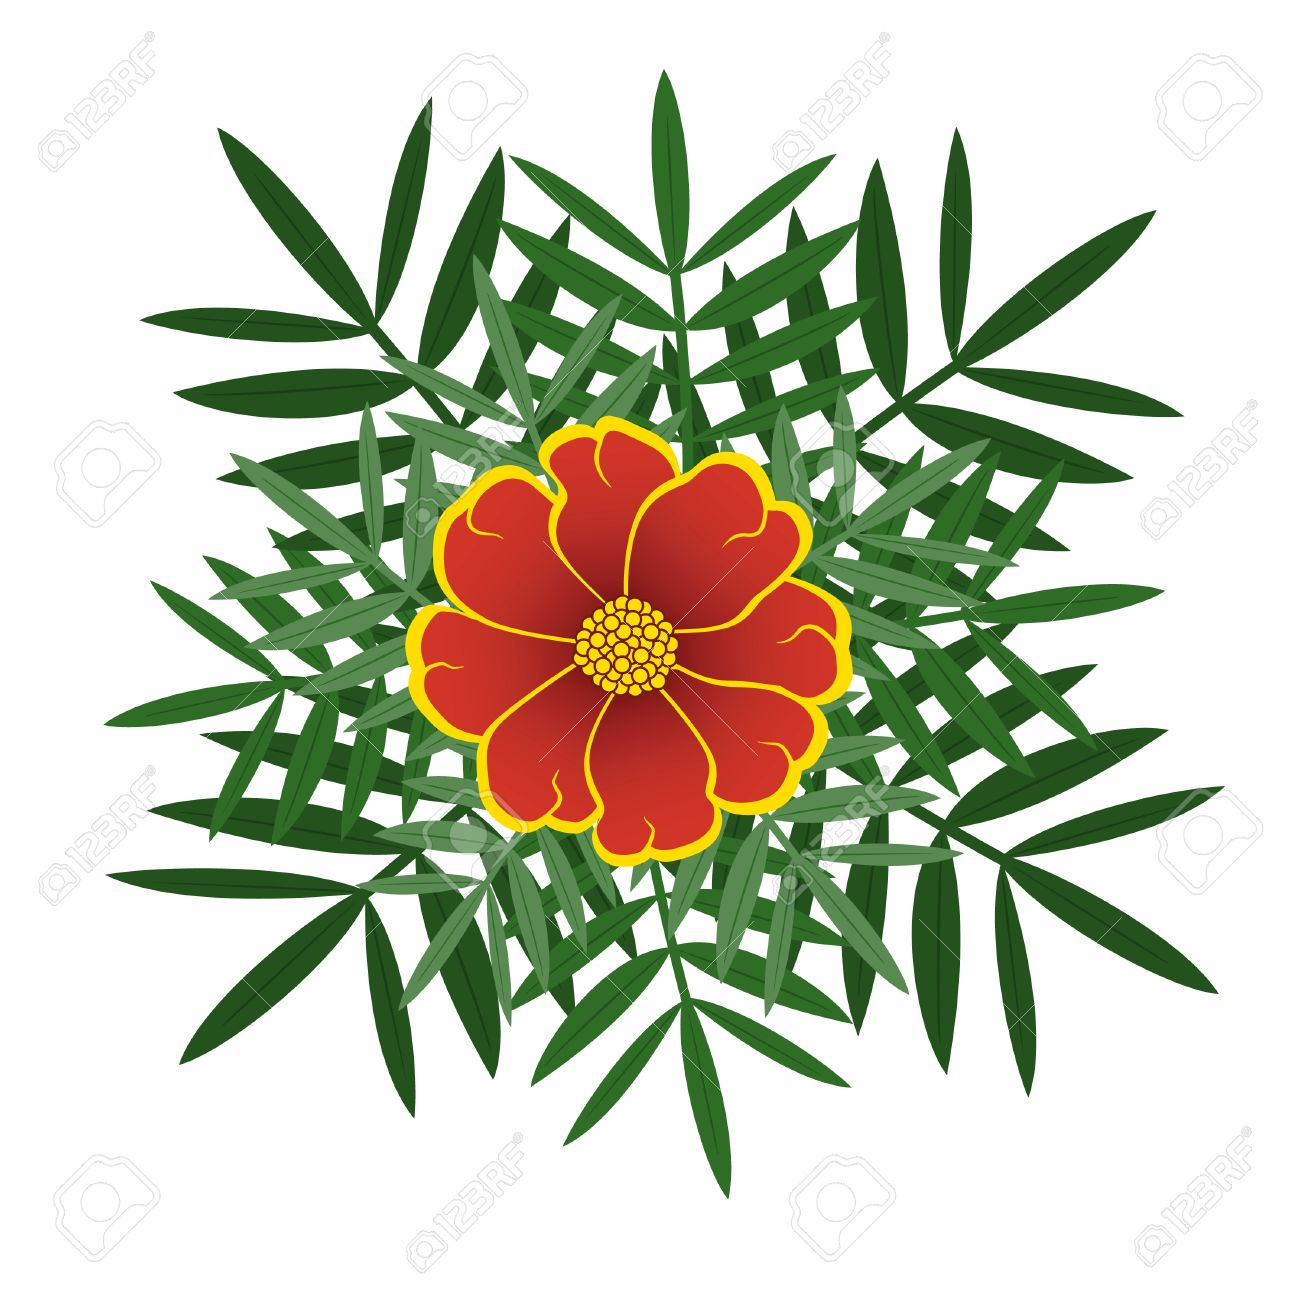 Orange Marigolds Blooming With Green Leaves Royalty Free Cliparts ...